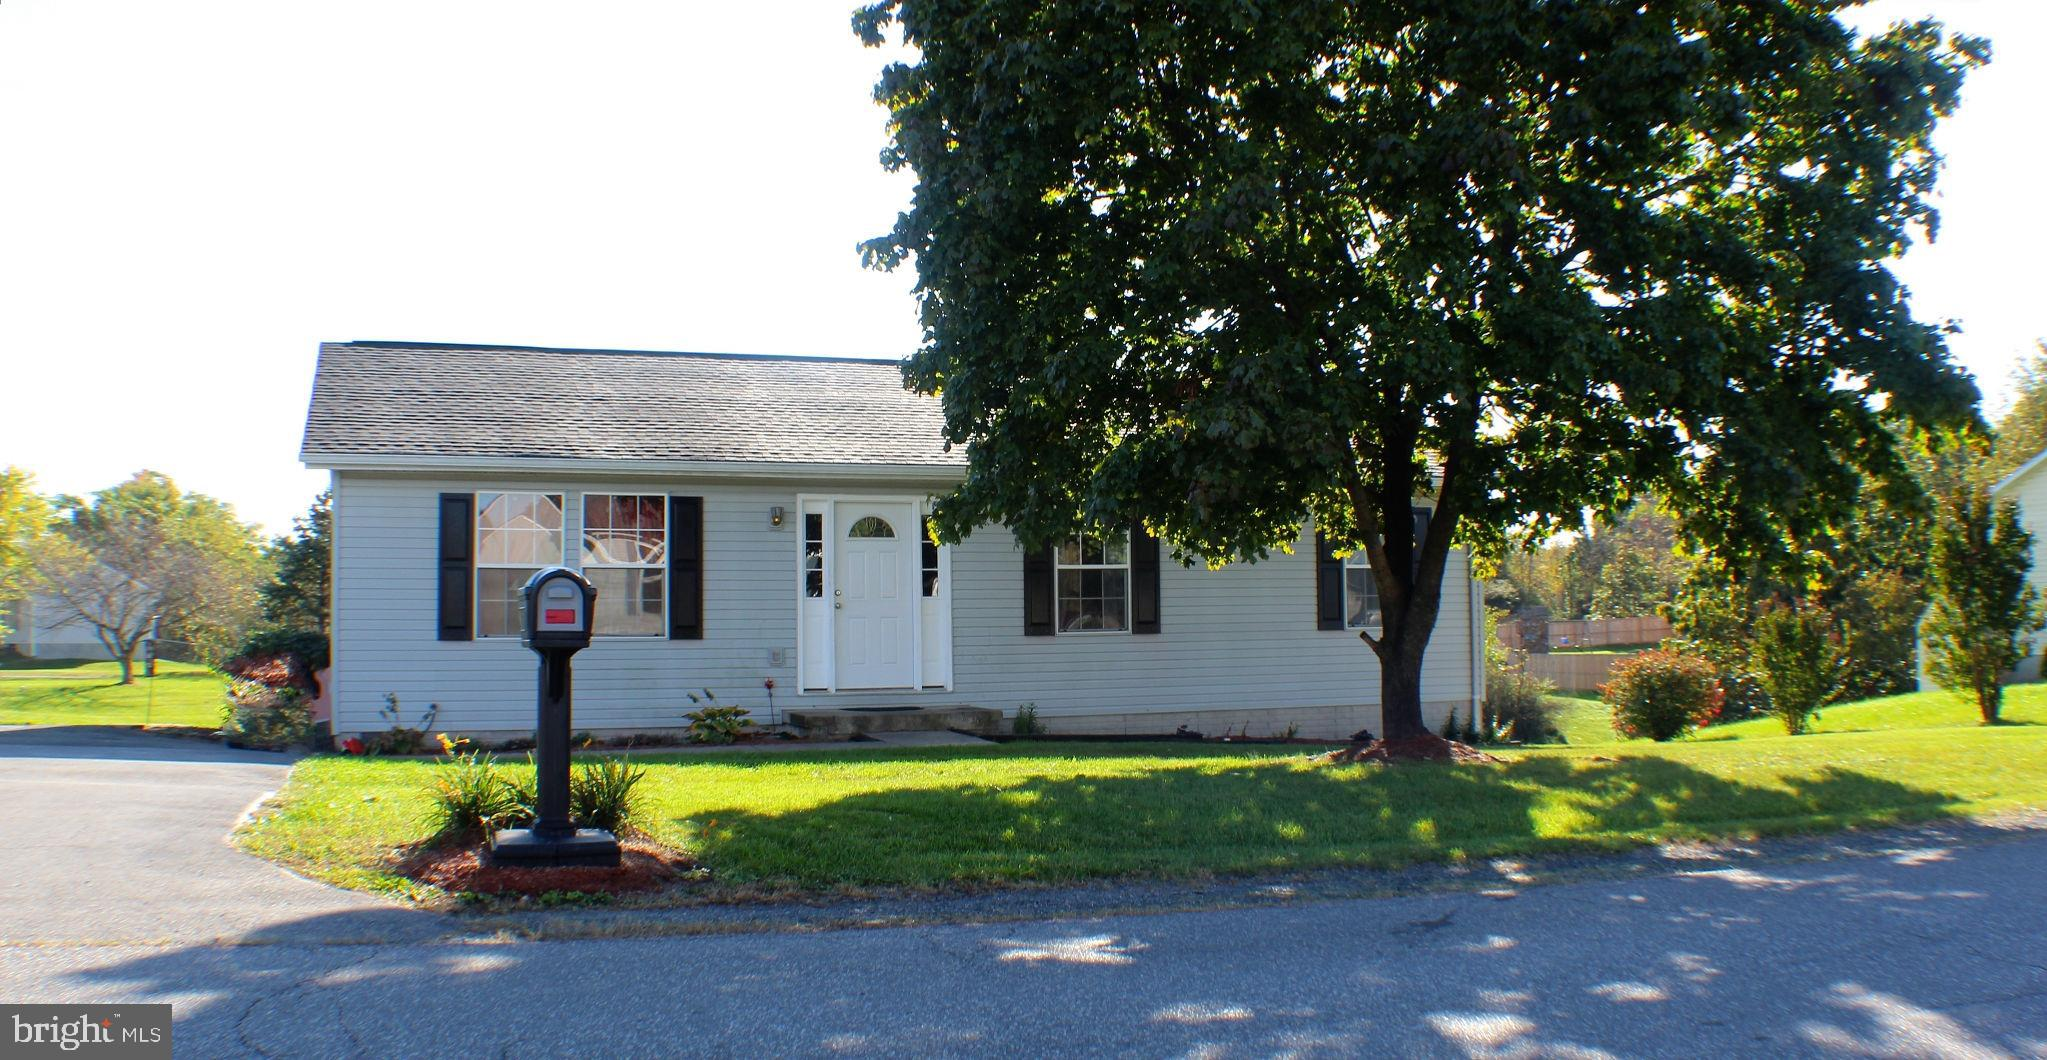 3 BR, 2 BA Rancher home located in the Nadenbousch Heights S/D. Home features living room and dining